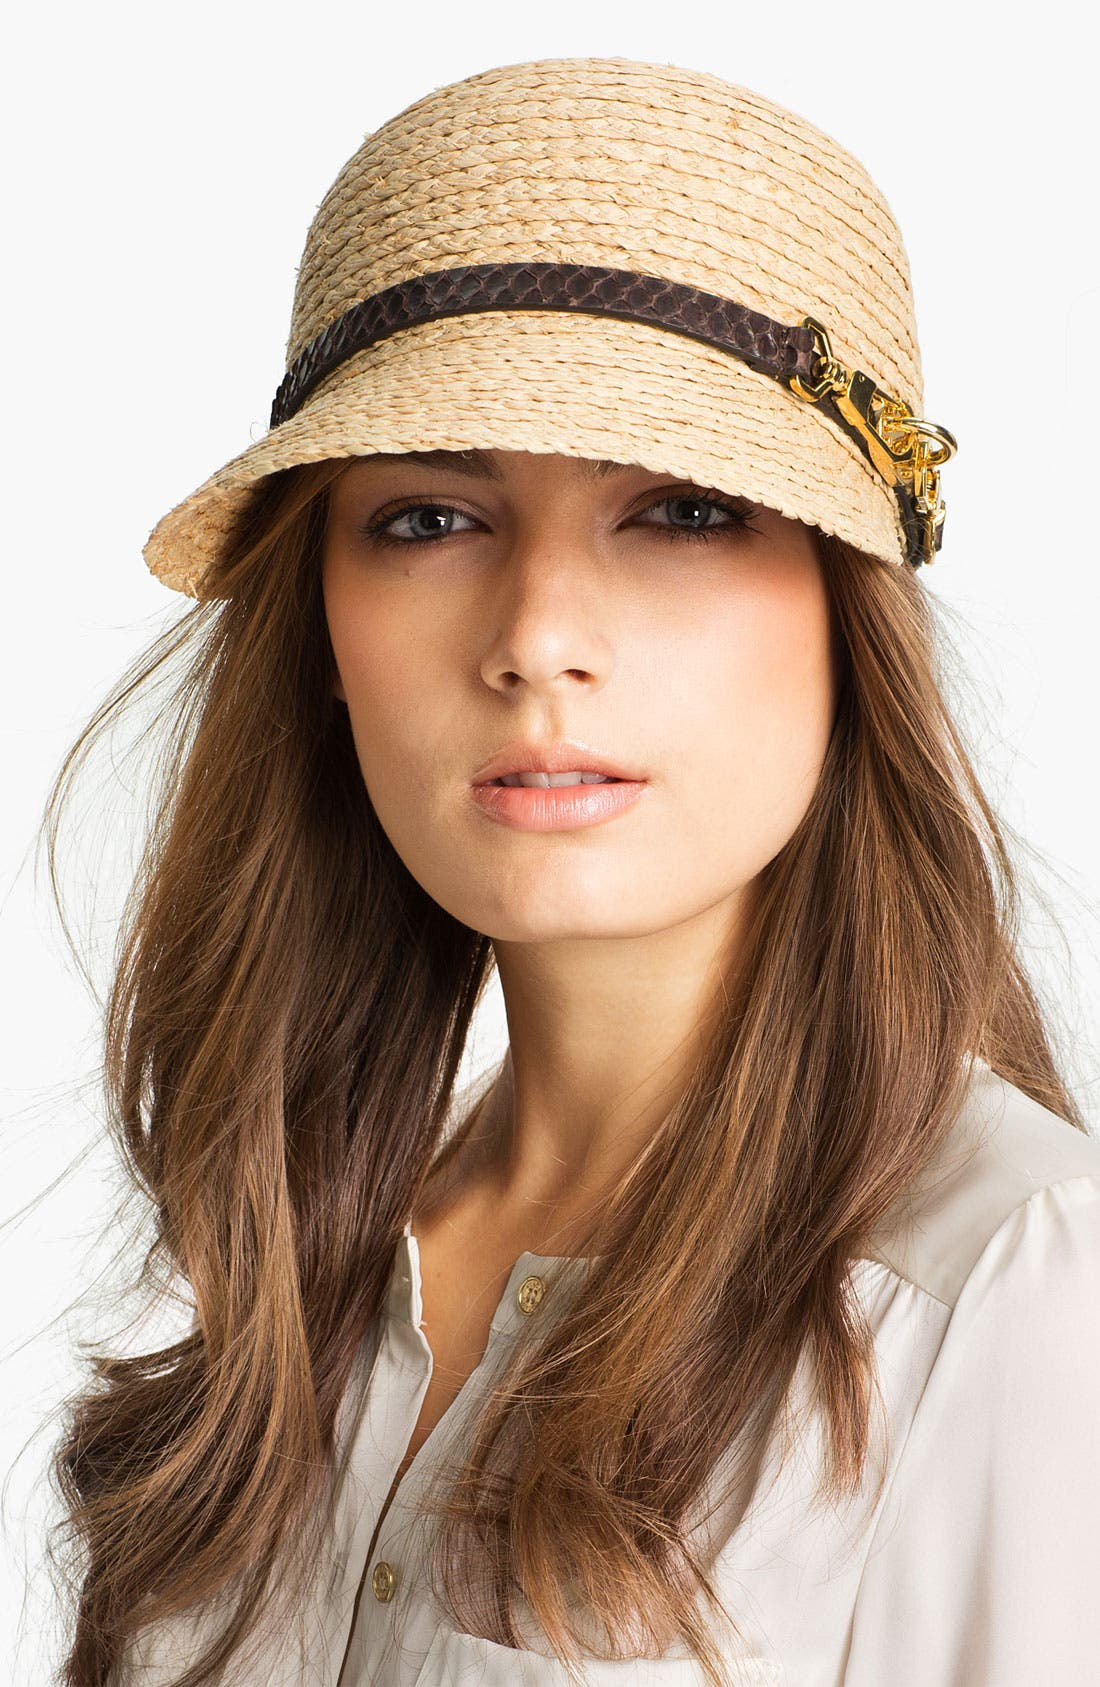 Alternate Image 1 Selected - Rachel Zoe Raffia Newsboy Cap